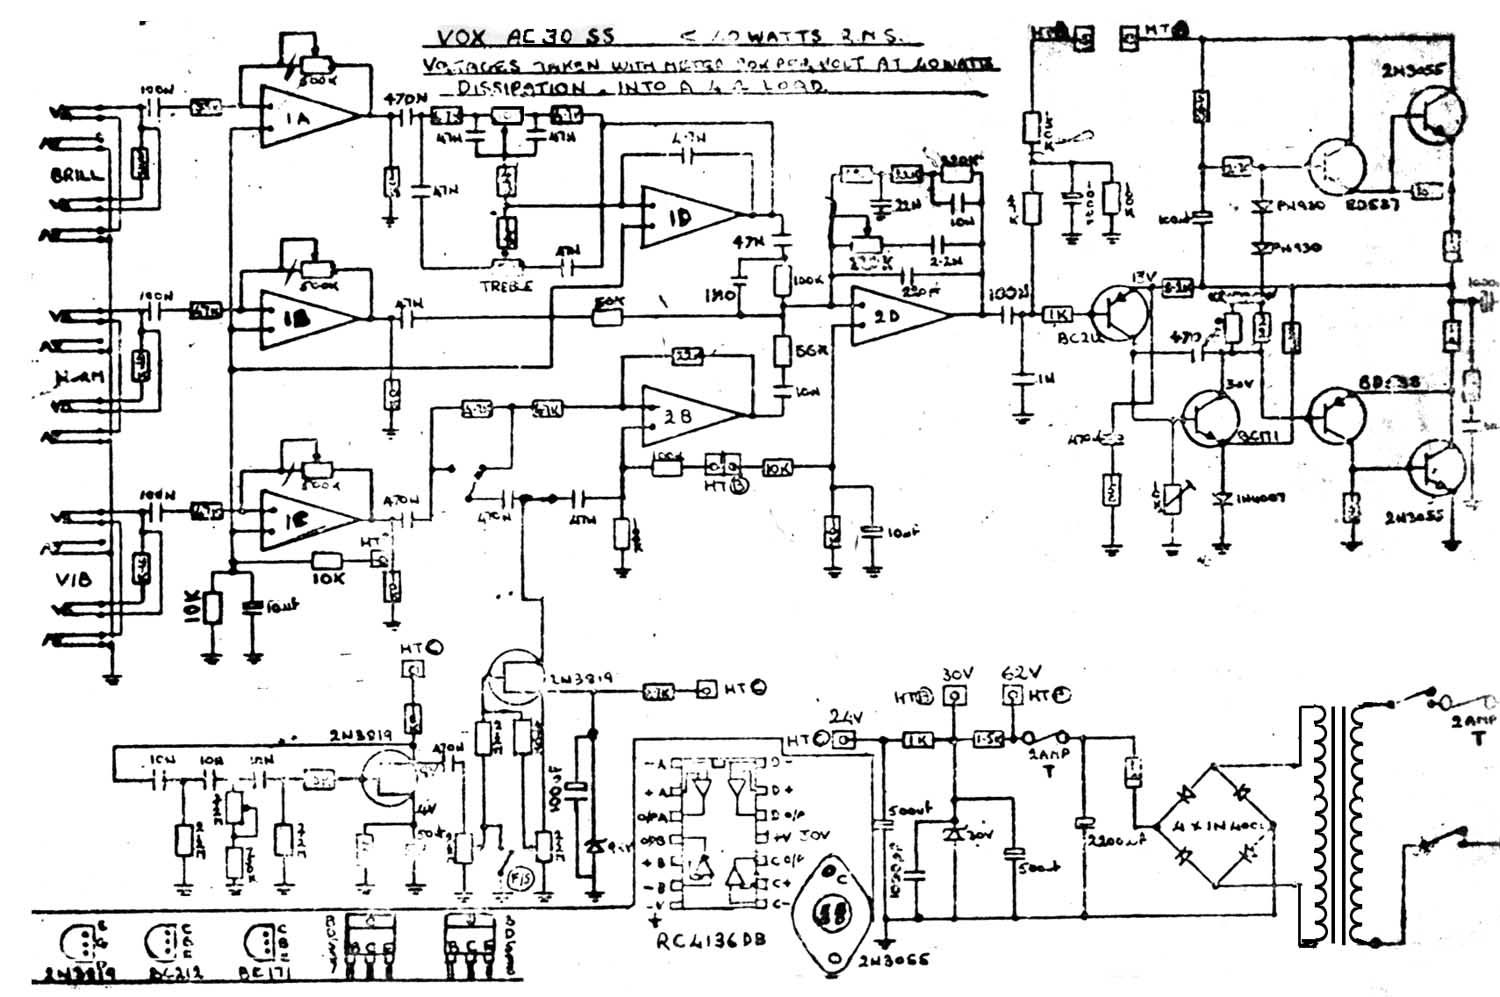 Power Amplifier 2000 Watt Circuit Diagrams Wiring Library Ultrasonic Schematic Free Download Diagram Vox Vintage